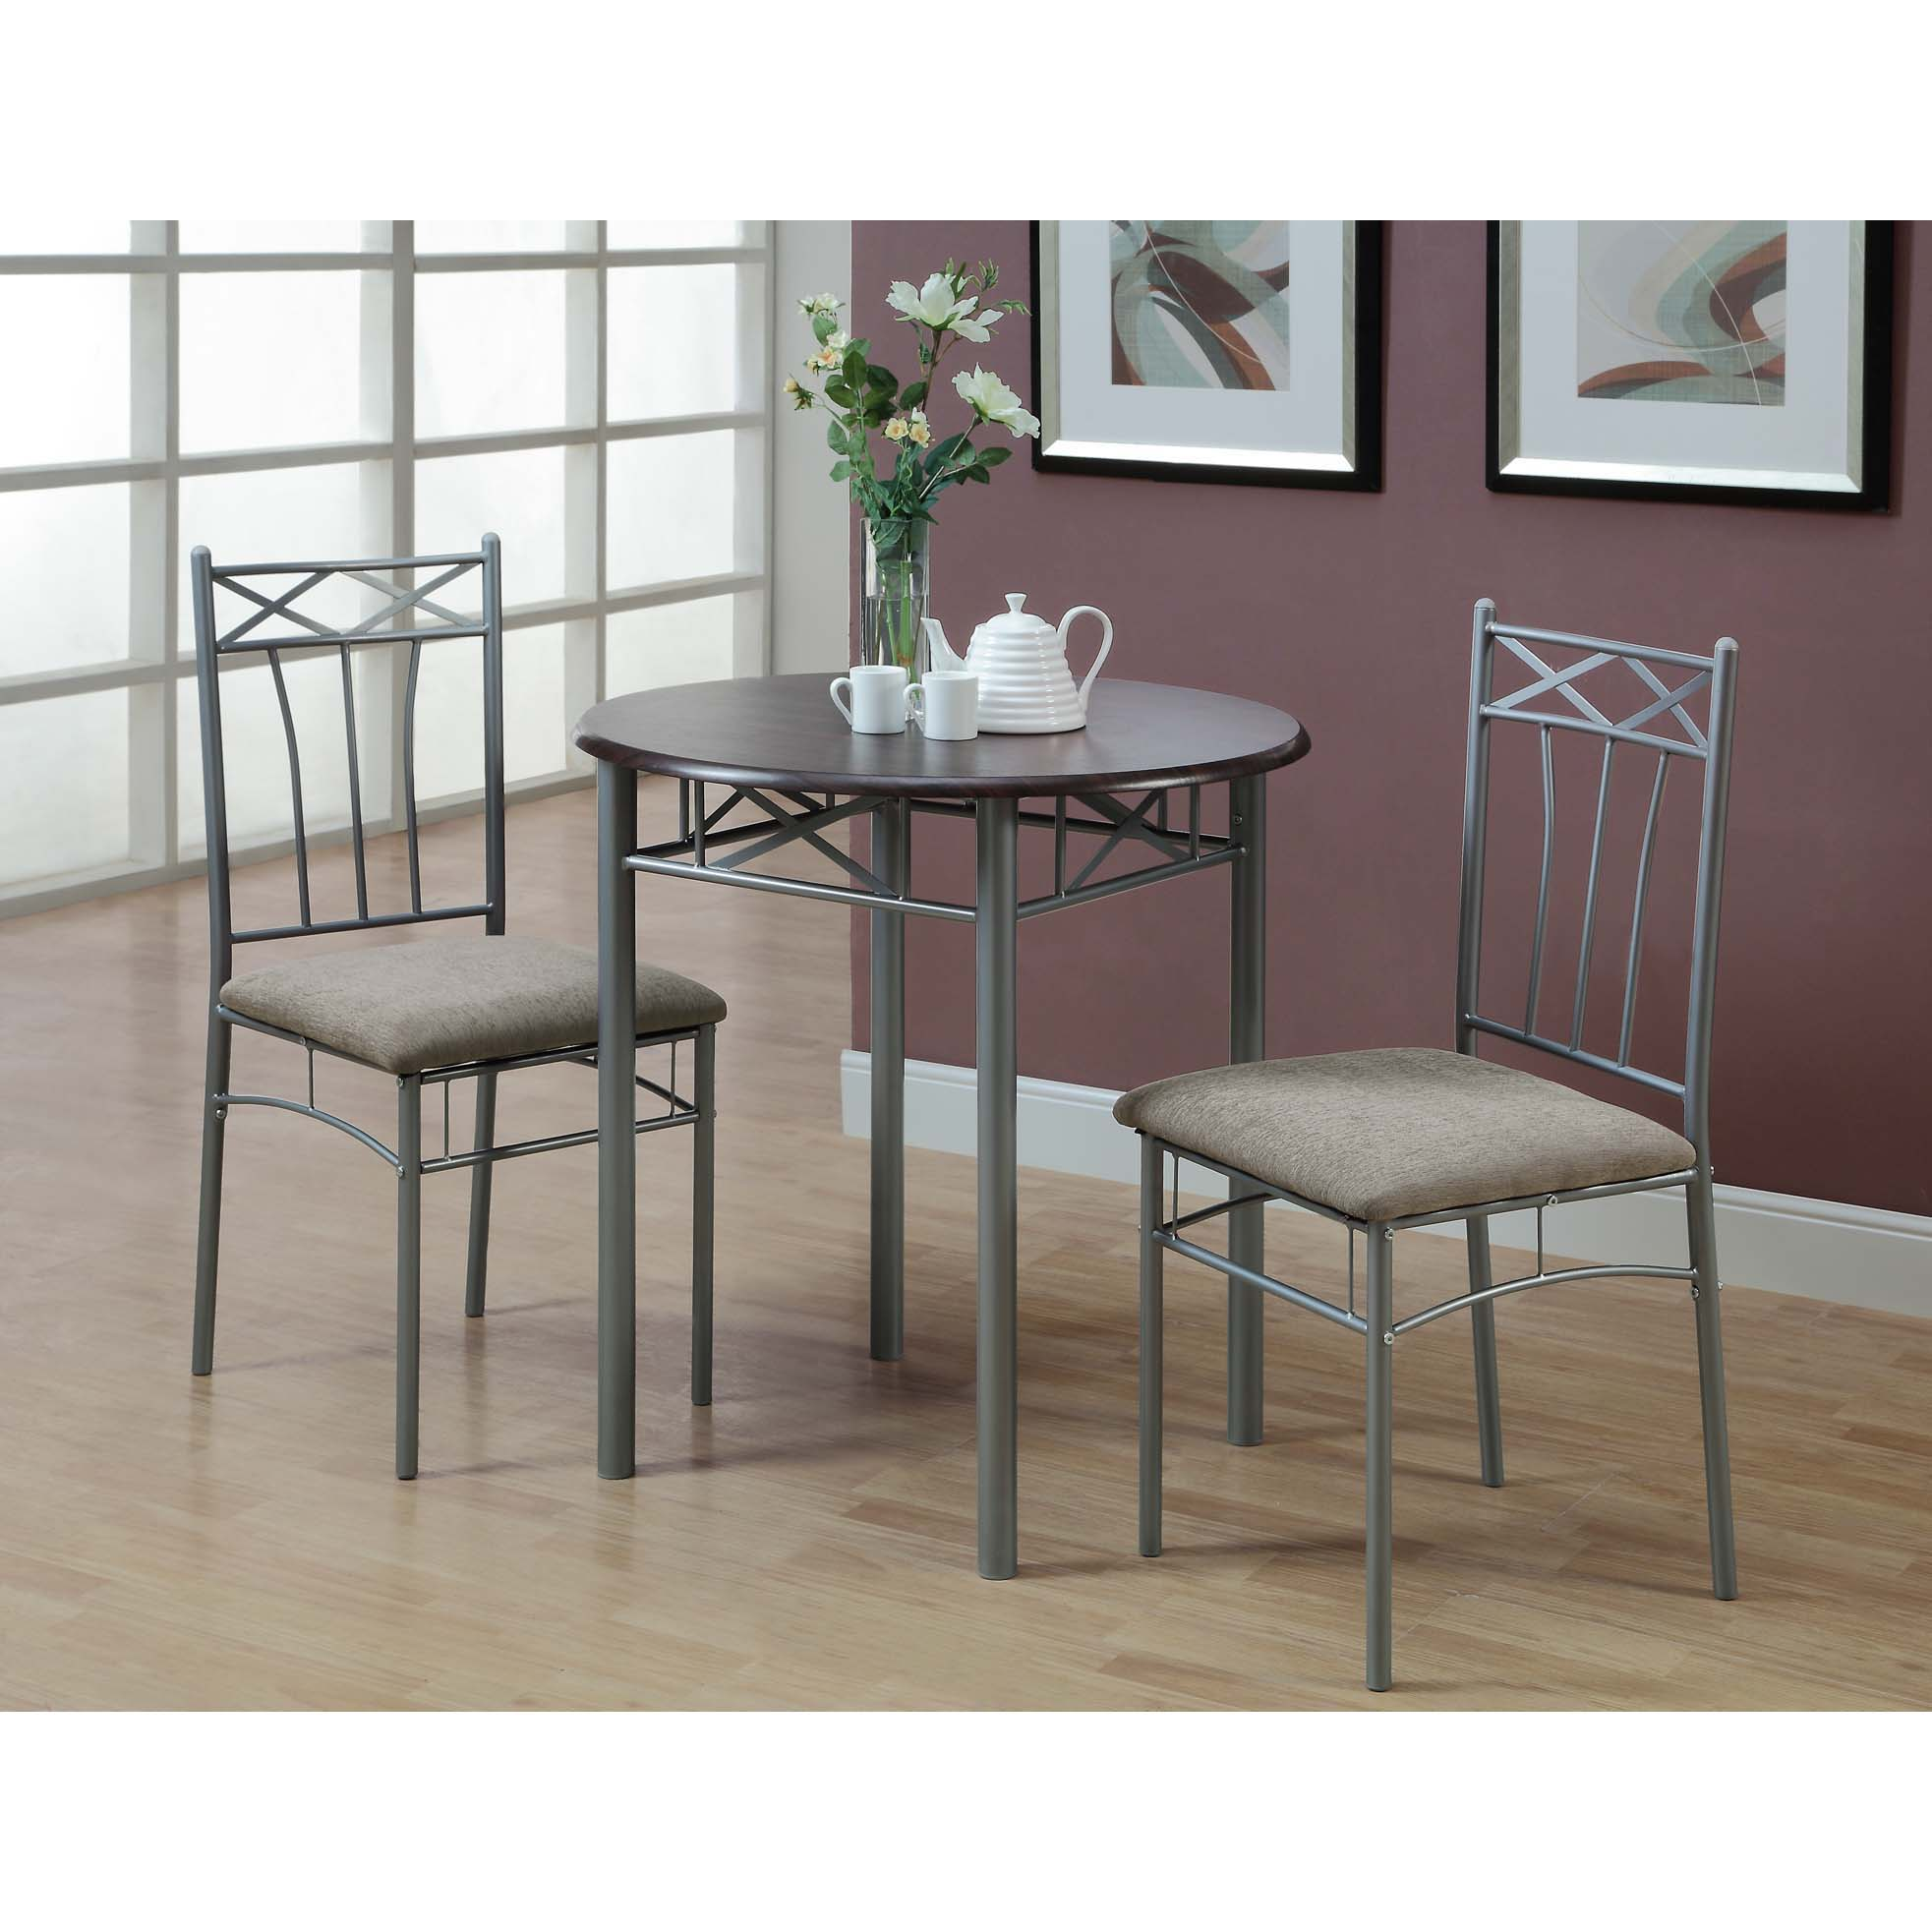 Cappuccino Silver Metal Piece Bistro Table Set Free Shipping - Bistro table set